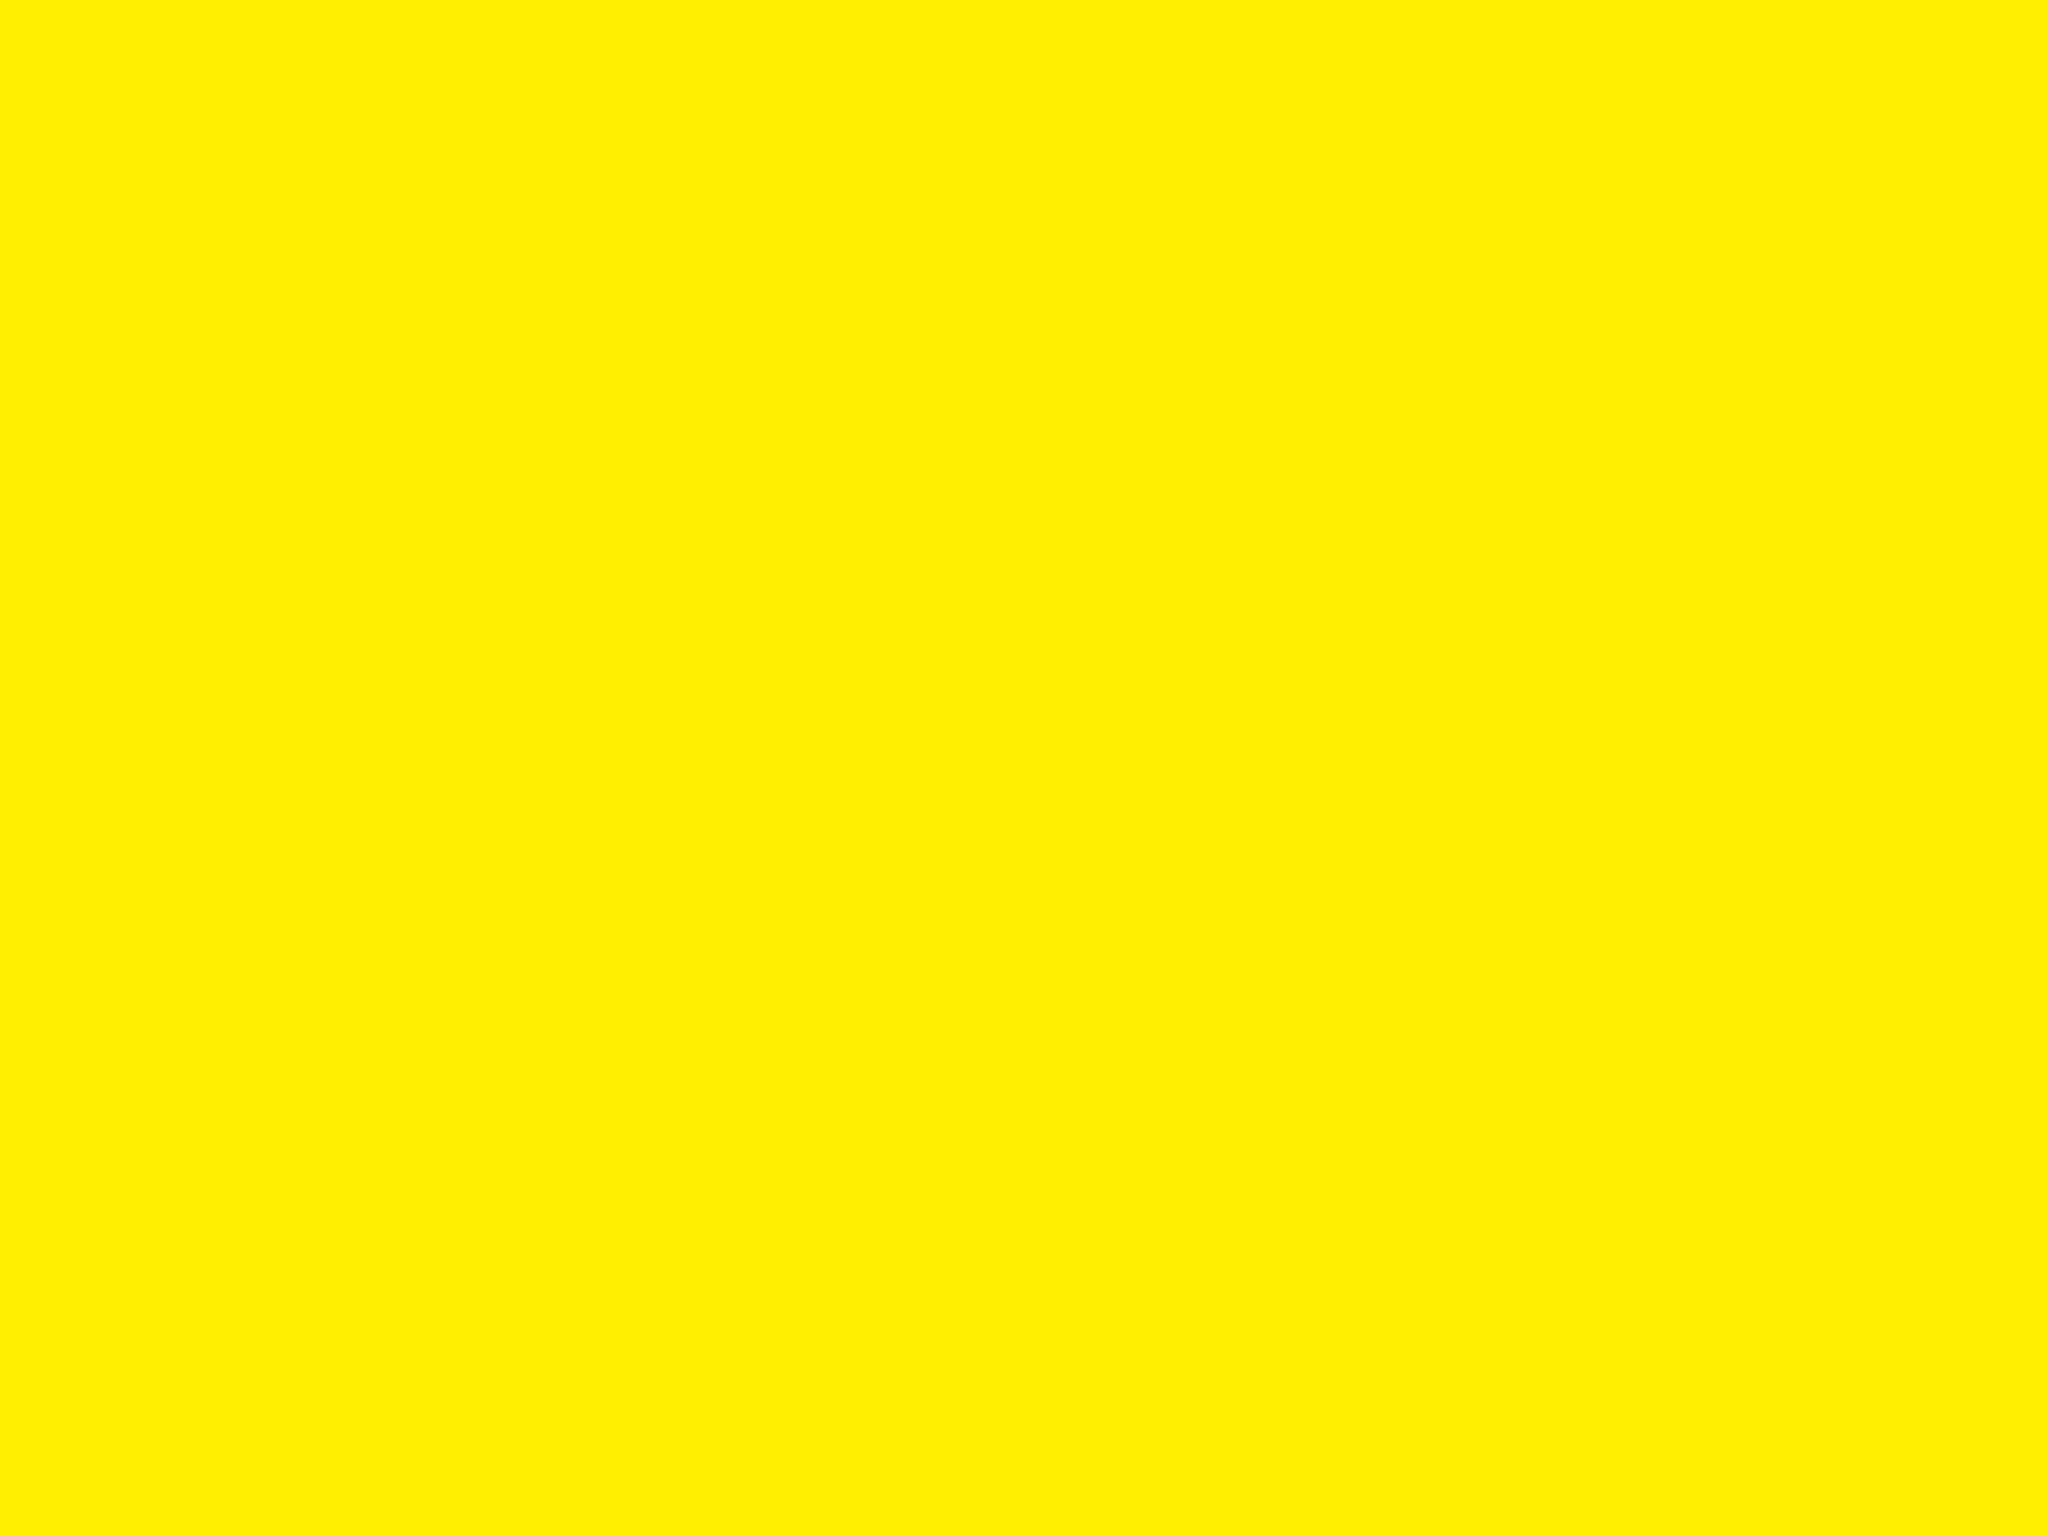 2048x1536 Canary Yellow Solid Color Background